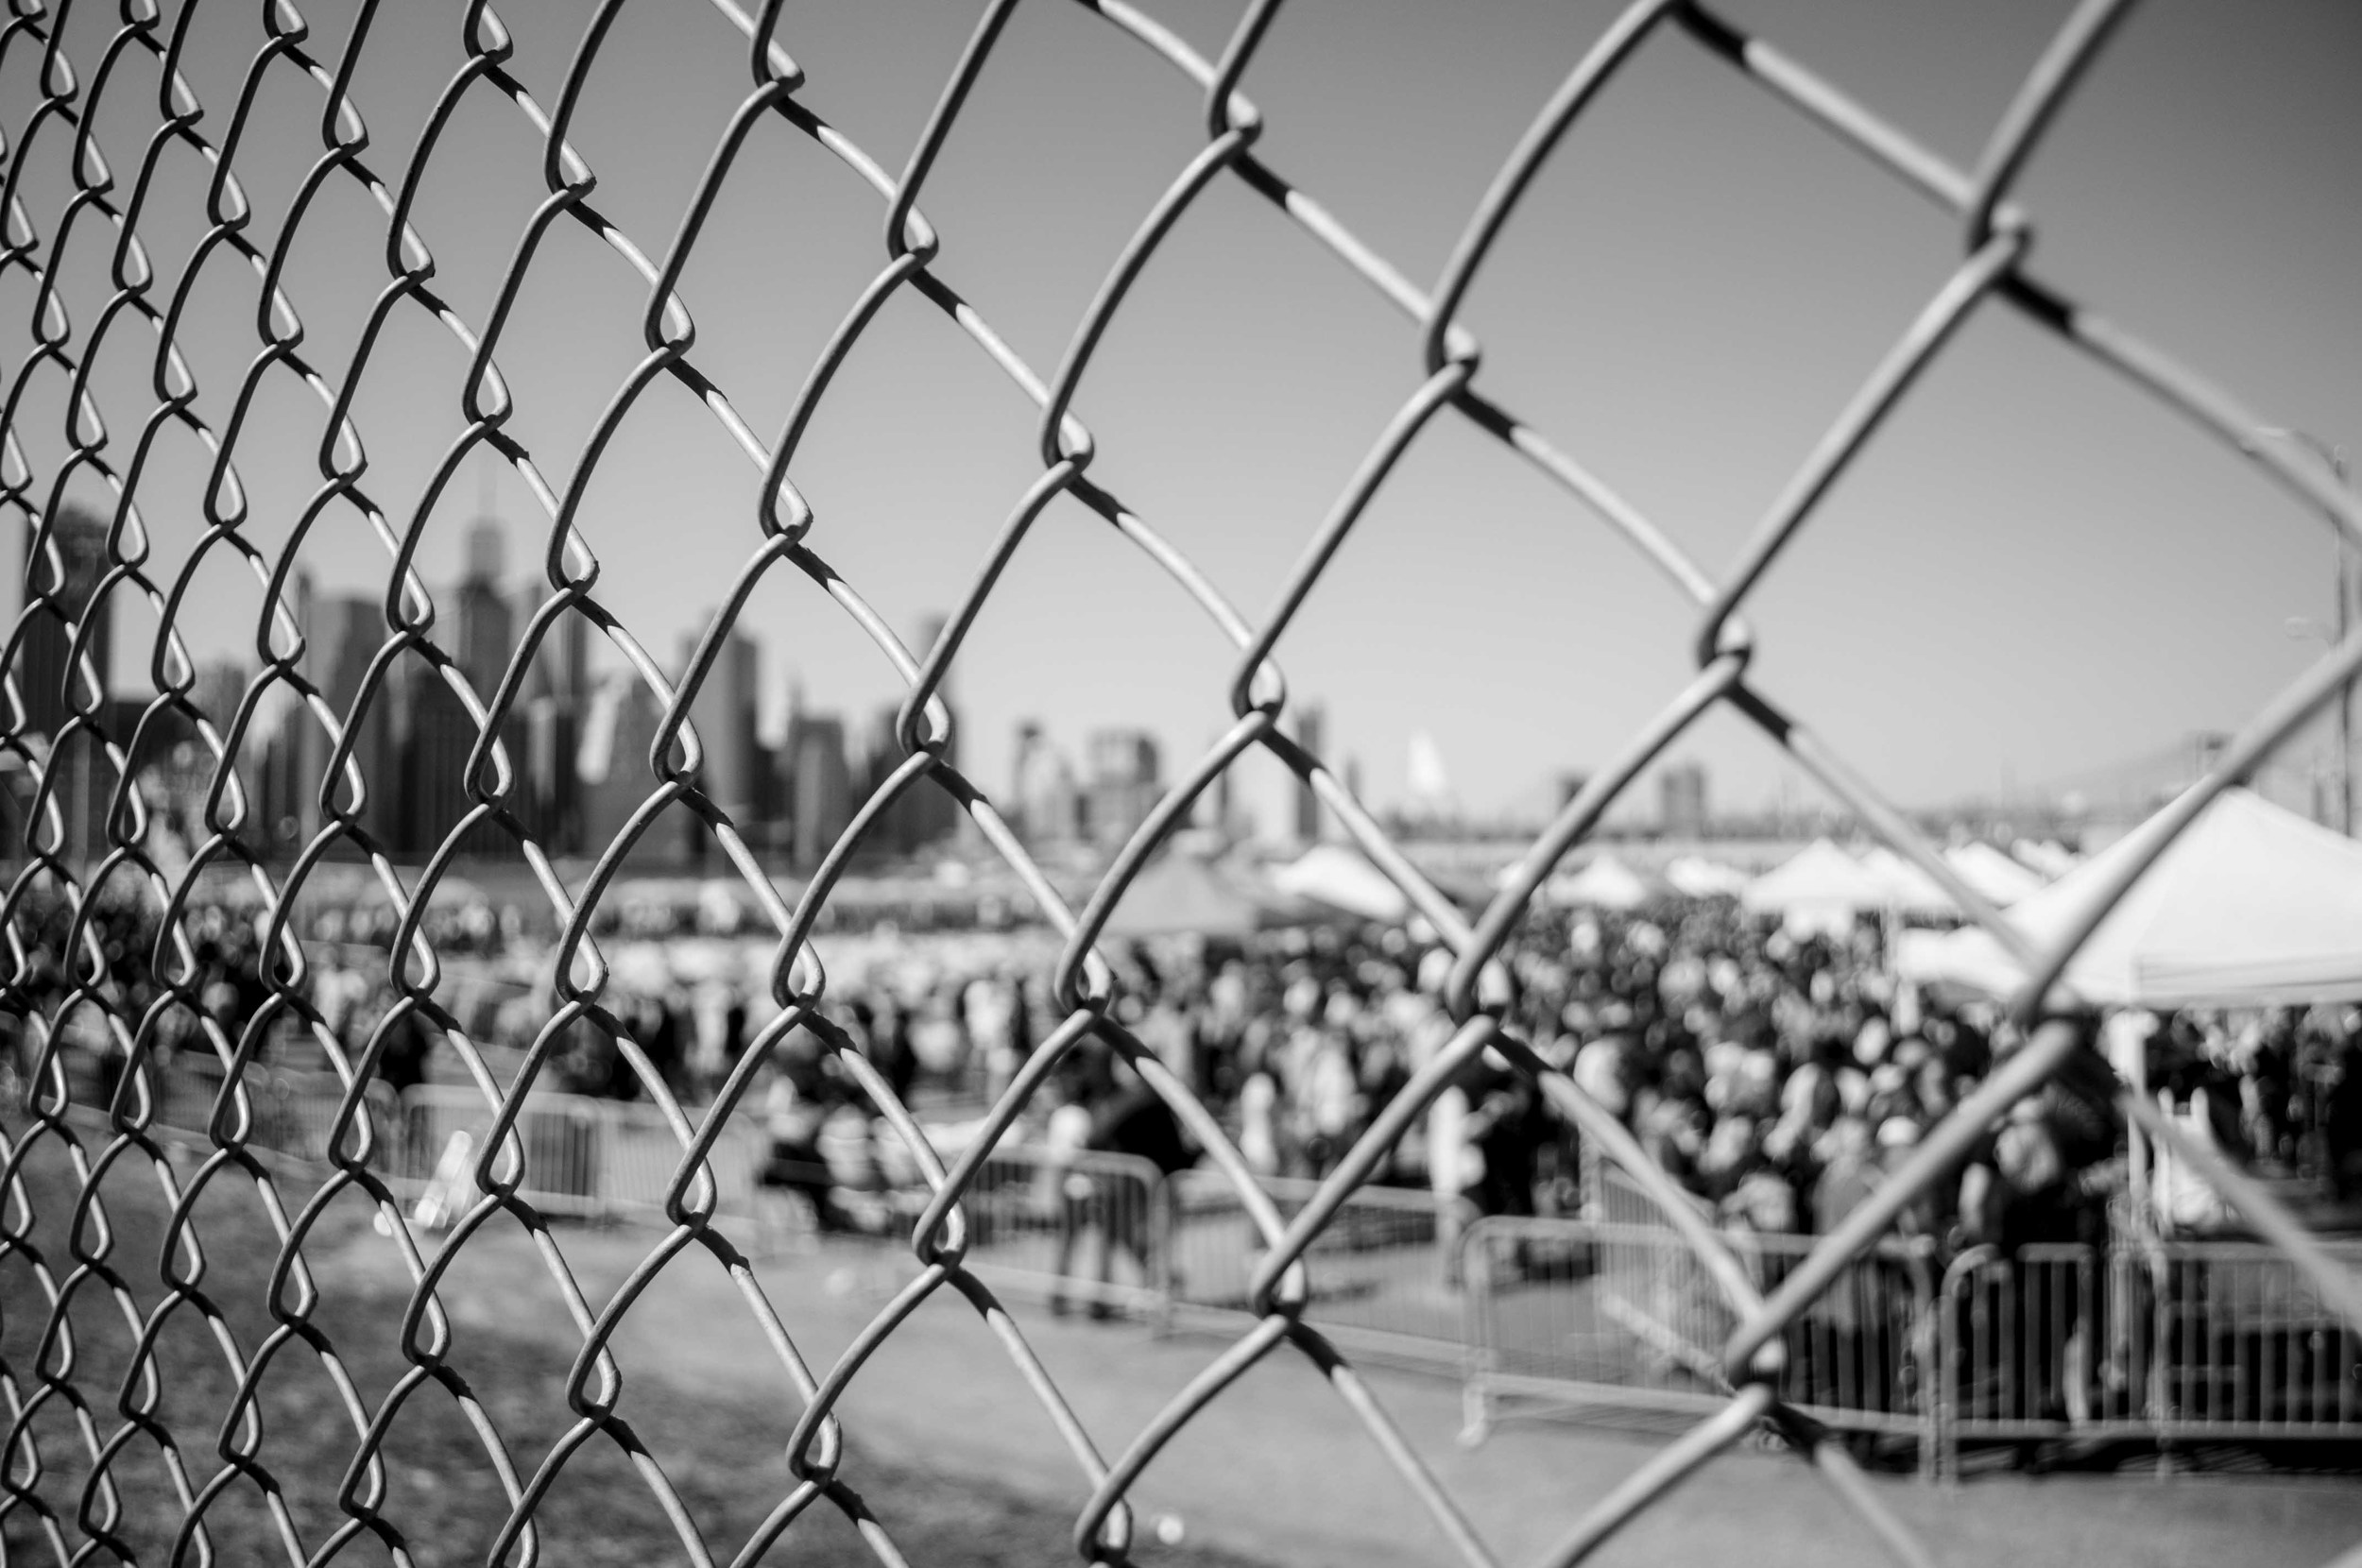 Looking through the fence into the outdoor market of Smorgasburg where the people milled, tasted, laughed and chatted.